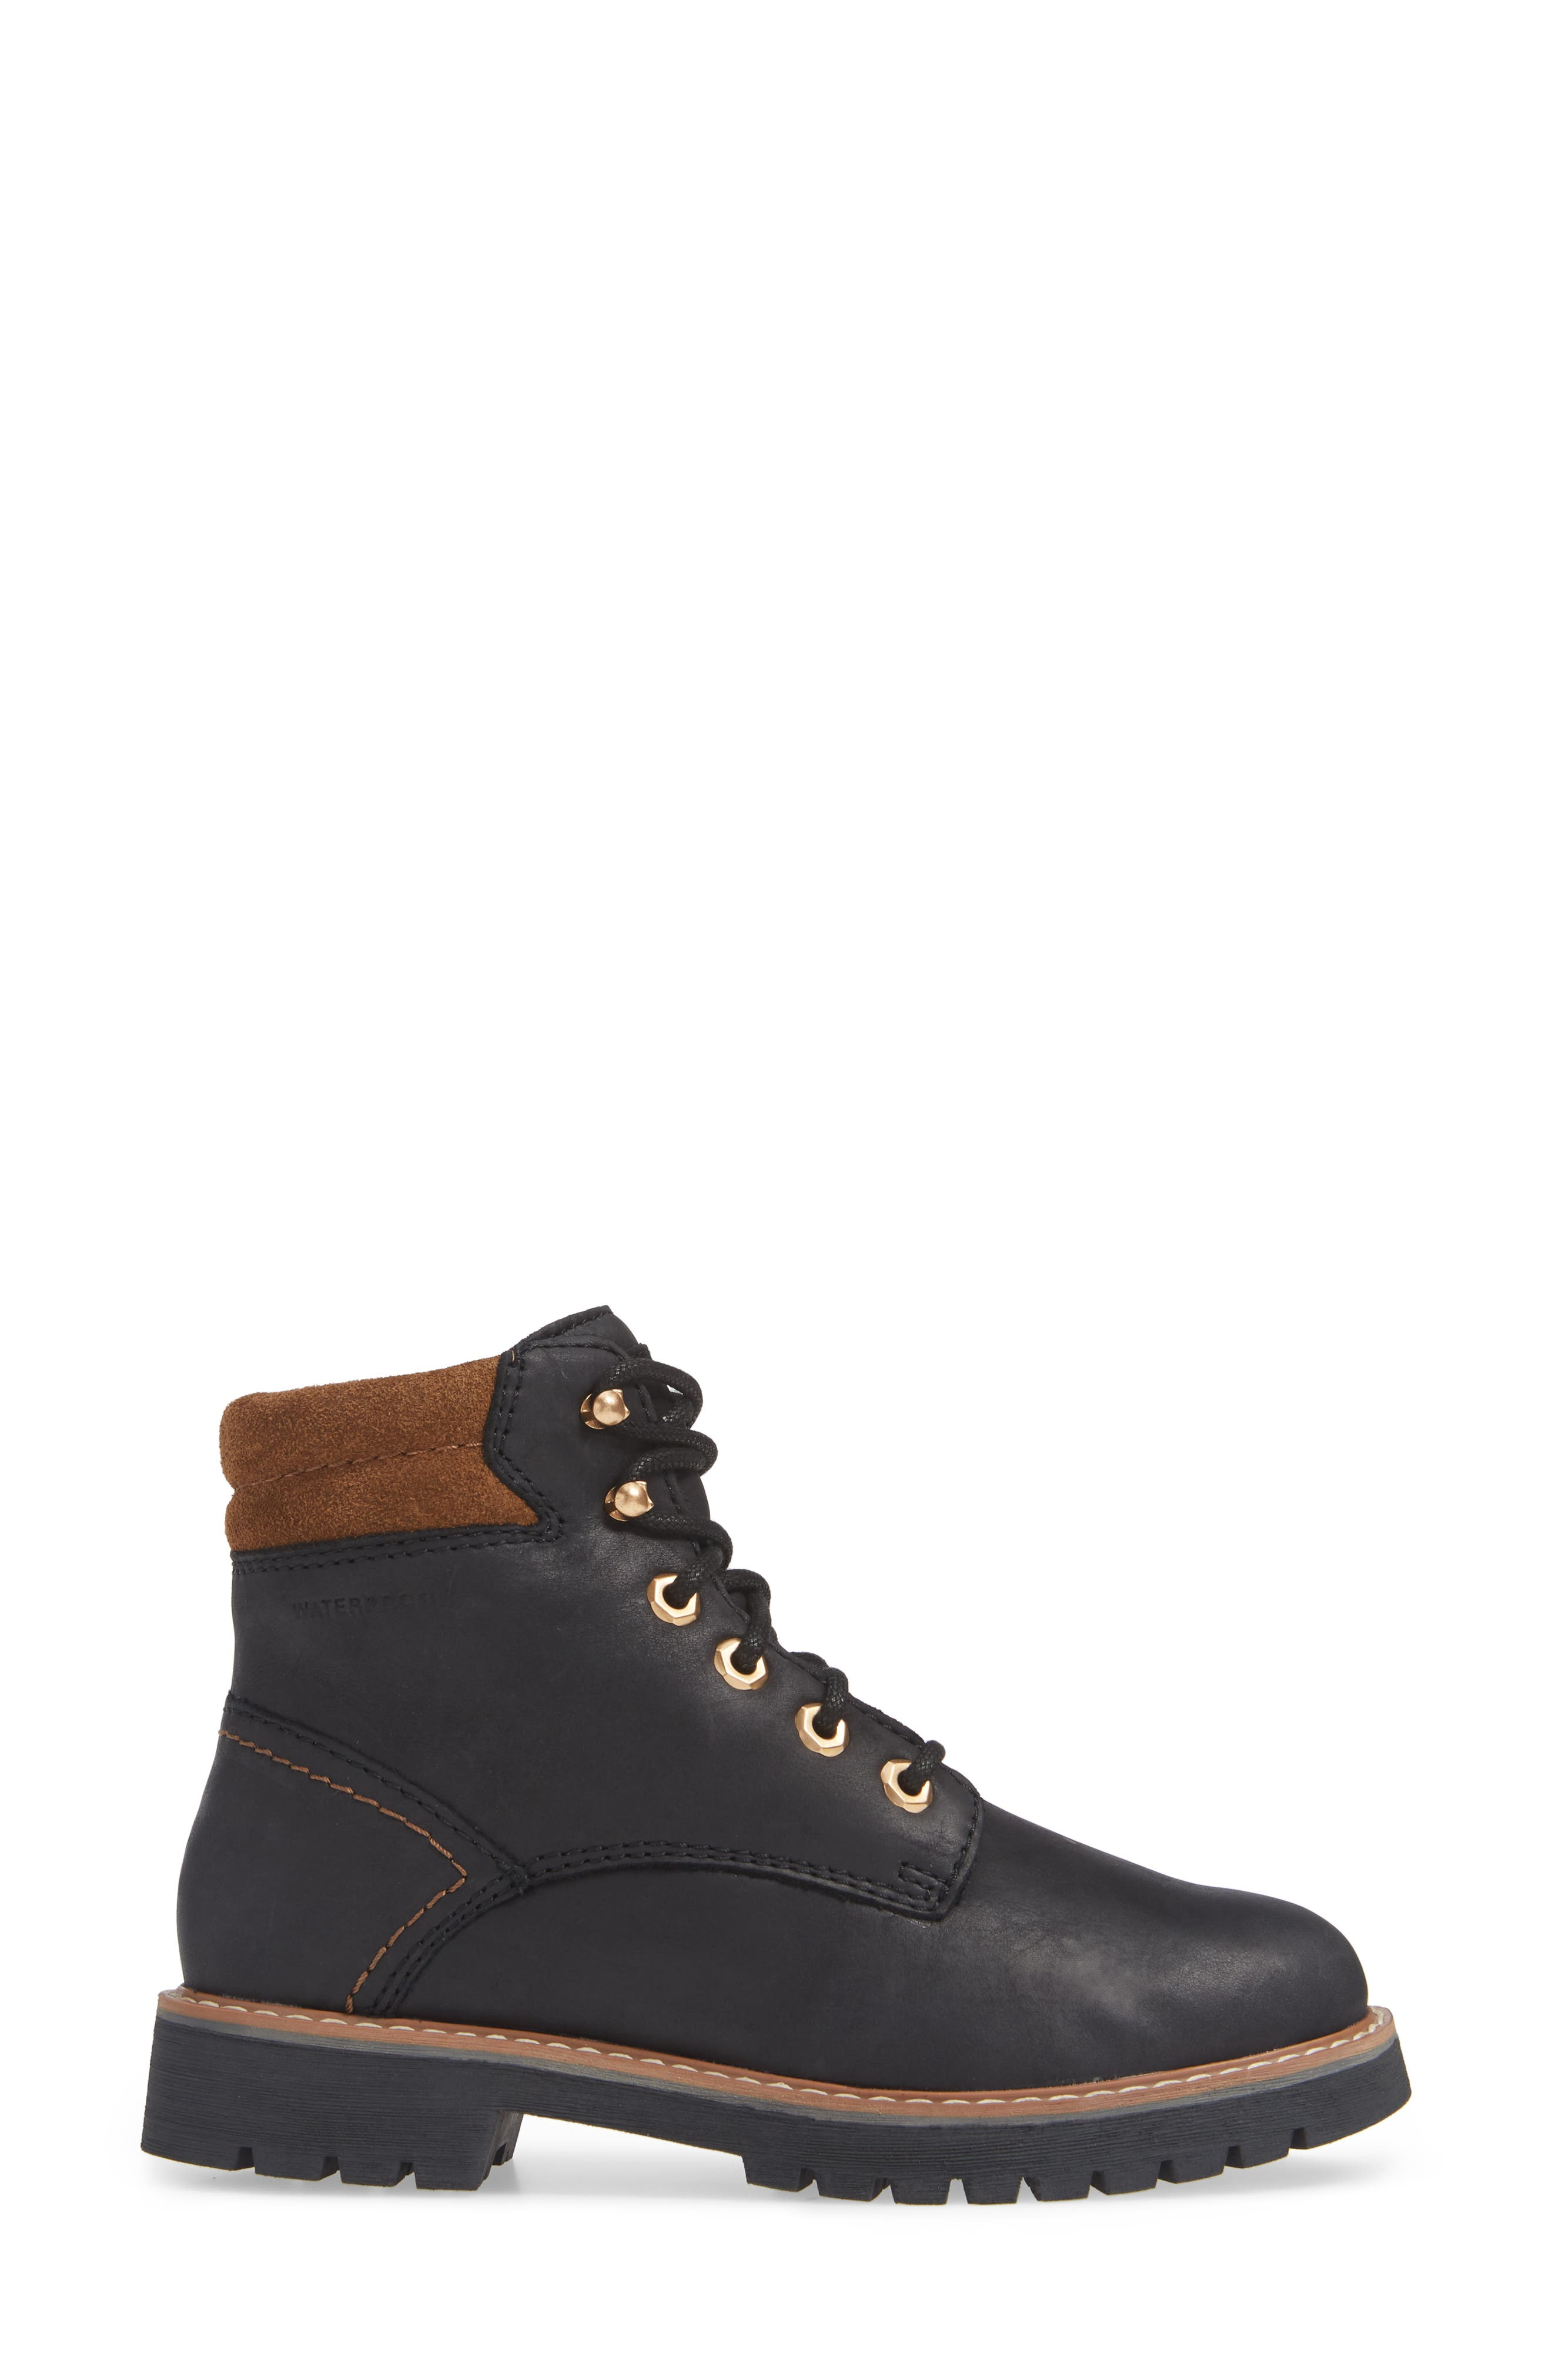 Heston Waterproof Insulated Hiking Boot,                             Alternate thumbnail 3, color,                             BLACK LEATHER